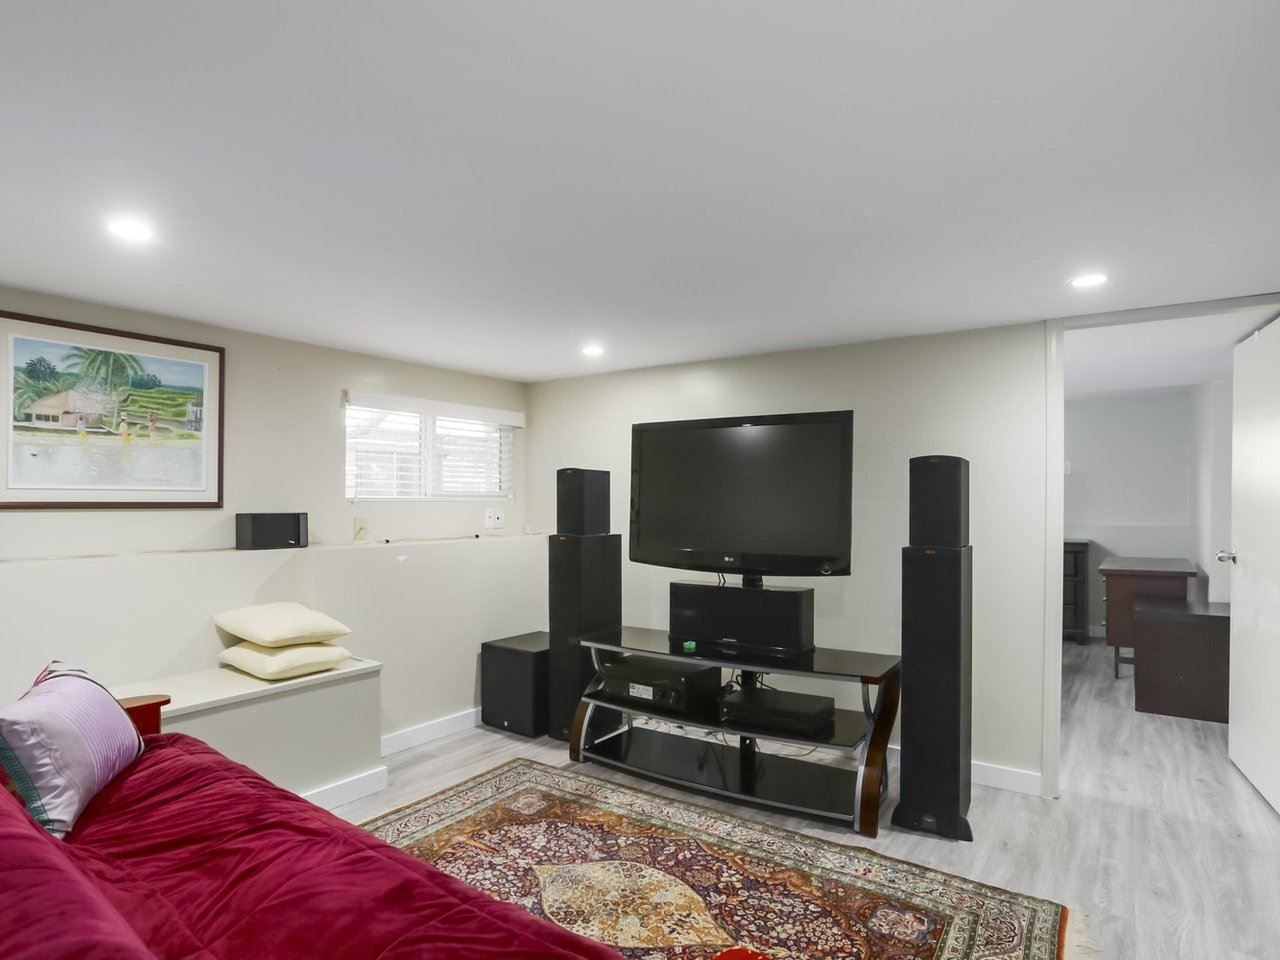 Photo 14: Photos: 325 W KINGS Road in North Vancouver: Upper Lonsdale House for sale : MLS®# R2443642